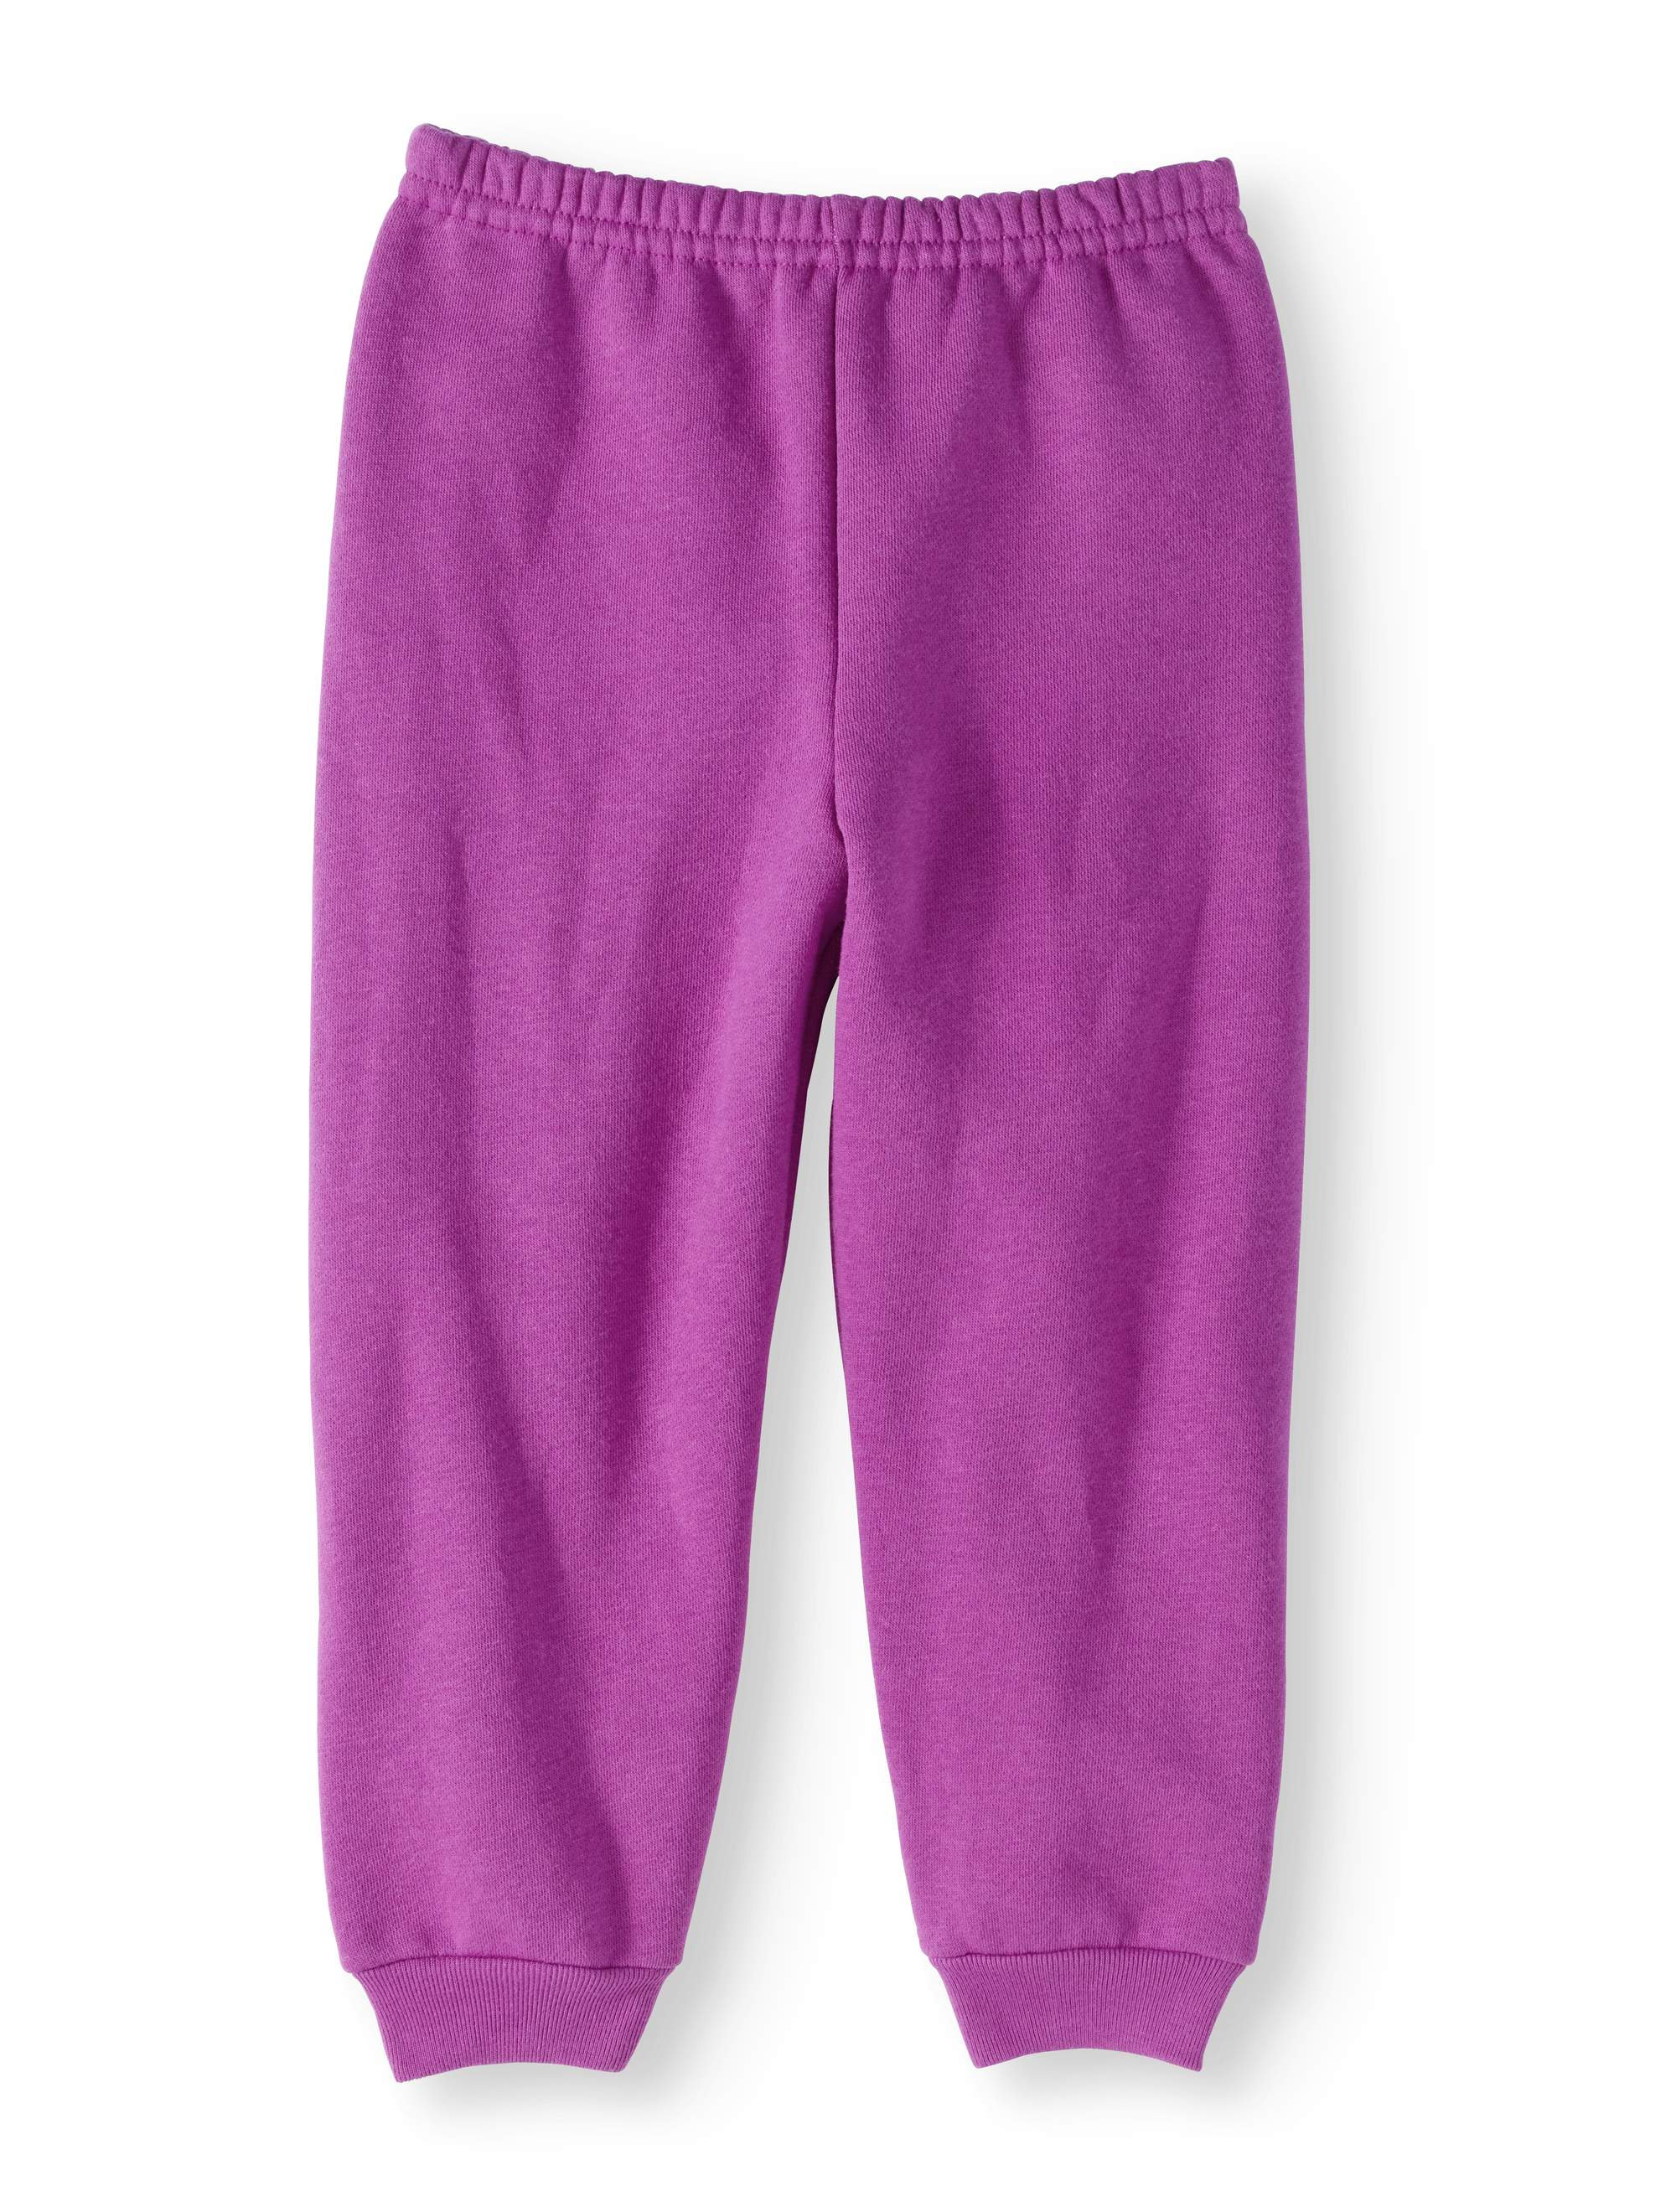 Baby Toddler Girls' Solid Fleece Sweatpants